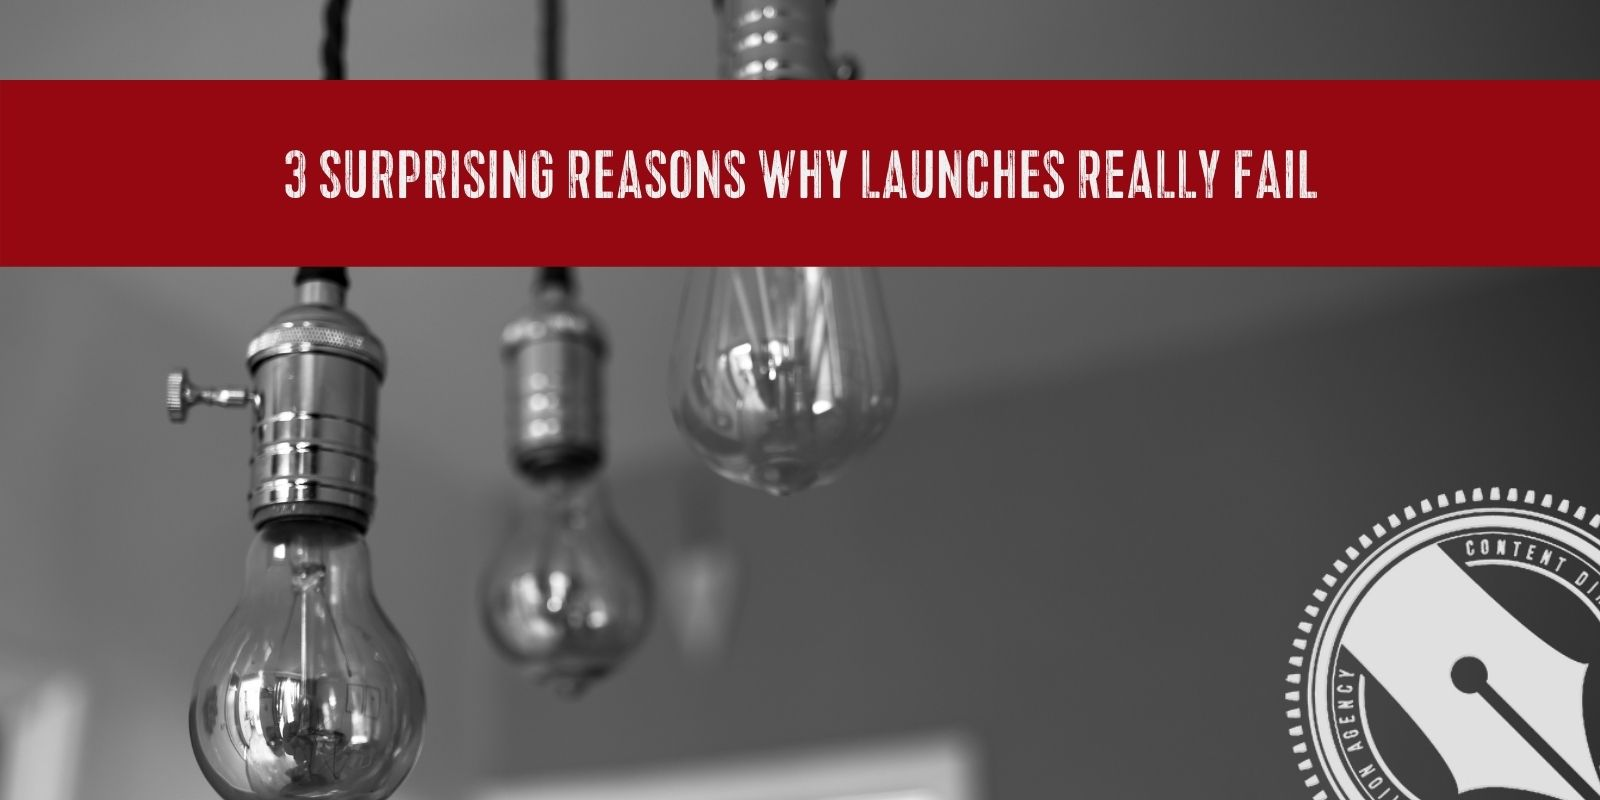 """[A red banner spans across the top of a black and white image of three vintage hanging glass bulbs. The banner reads, """"3 surprising reasons why launches really fail"""" - the title of this week's blog post.]"""